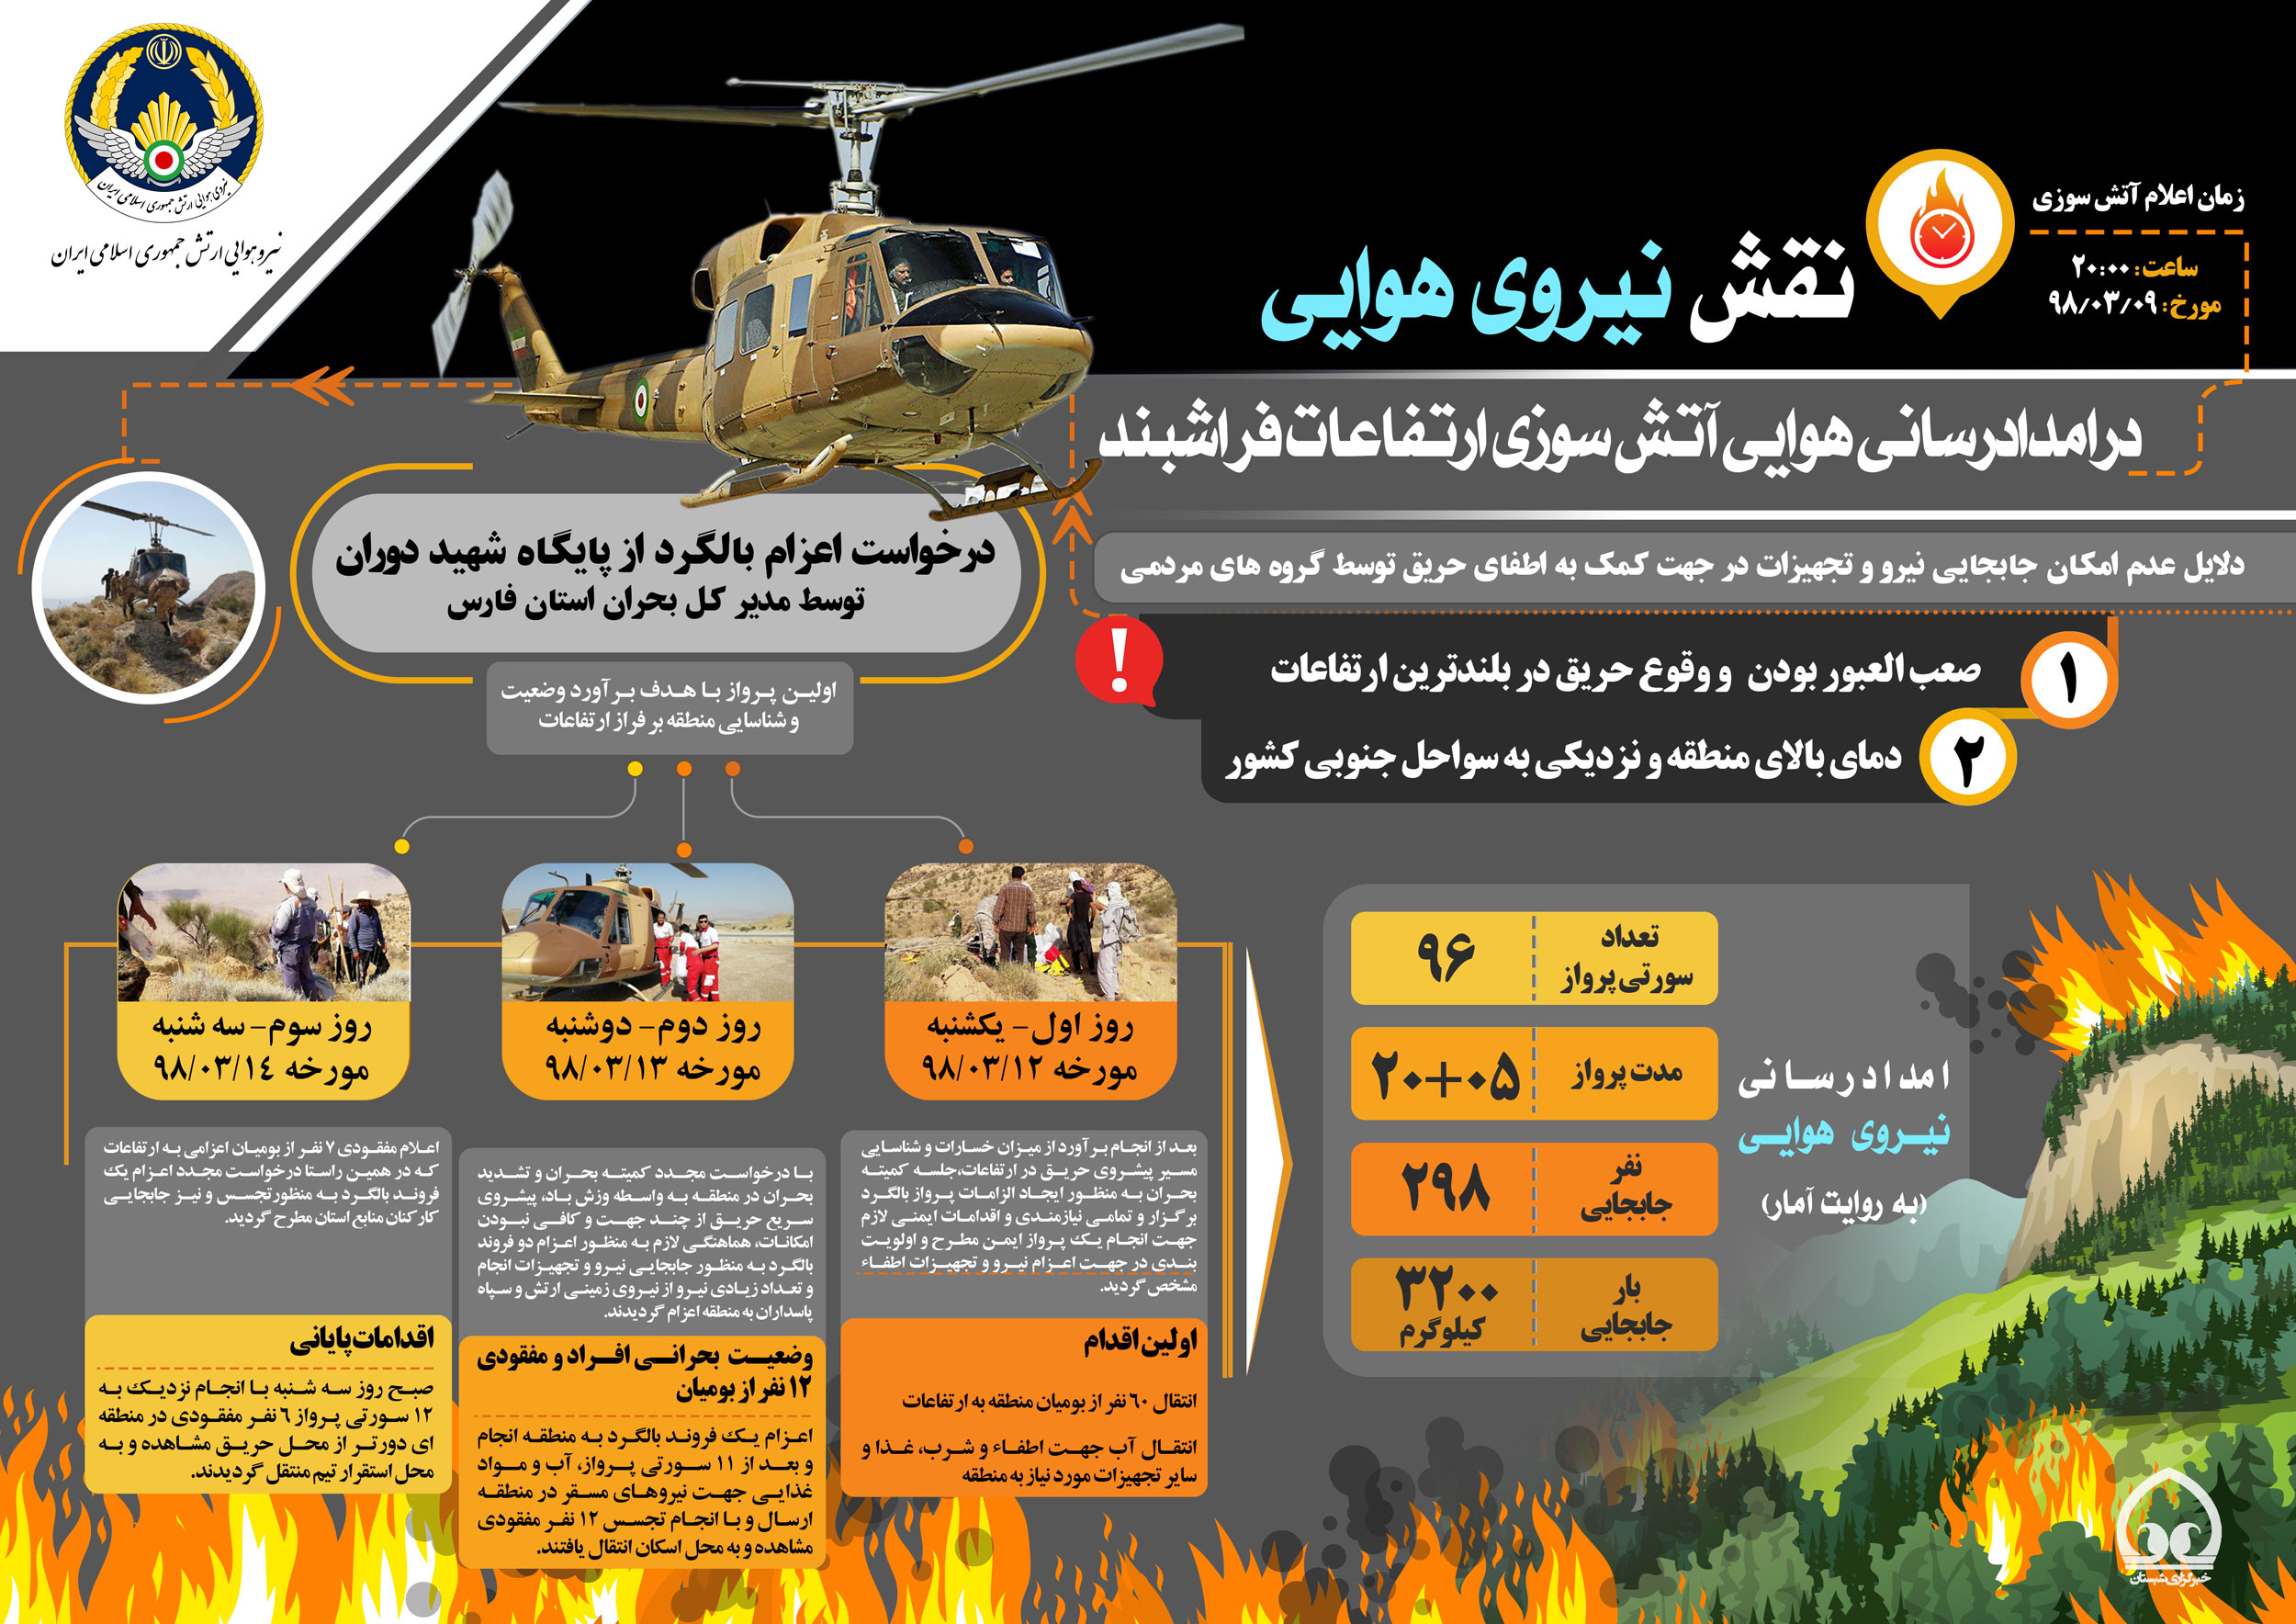 Iran-militry-fire-dep.